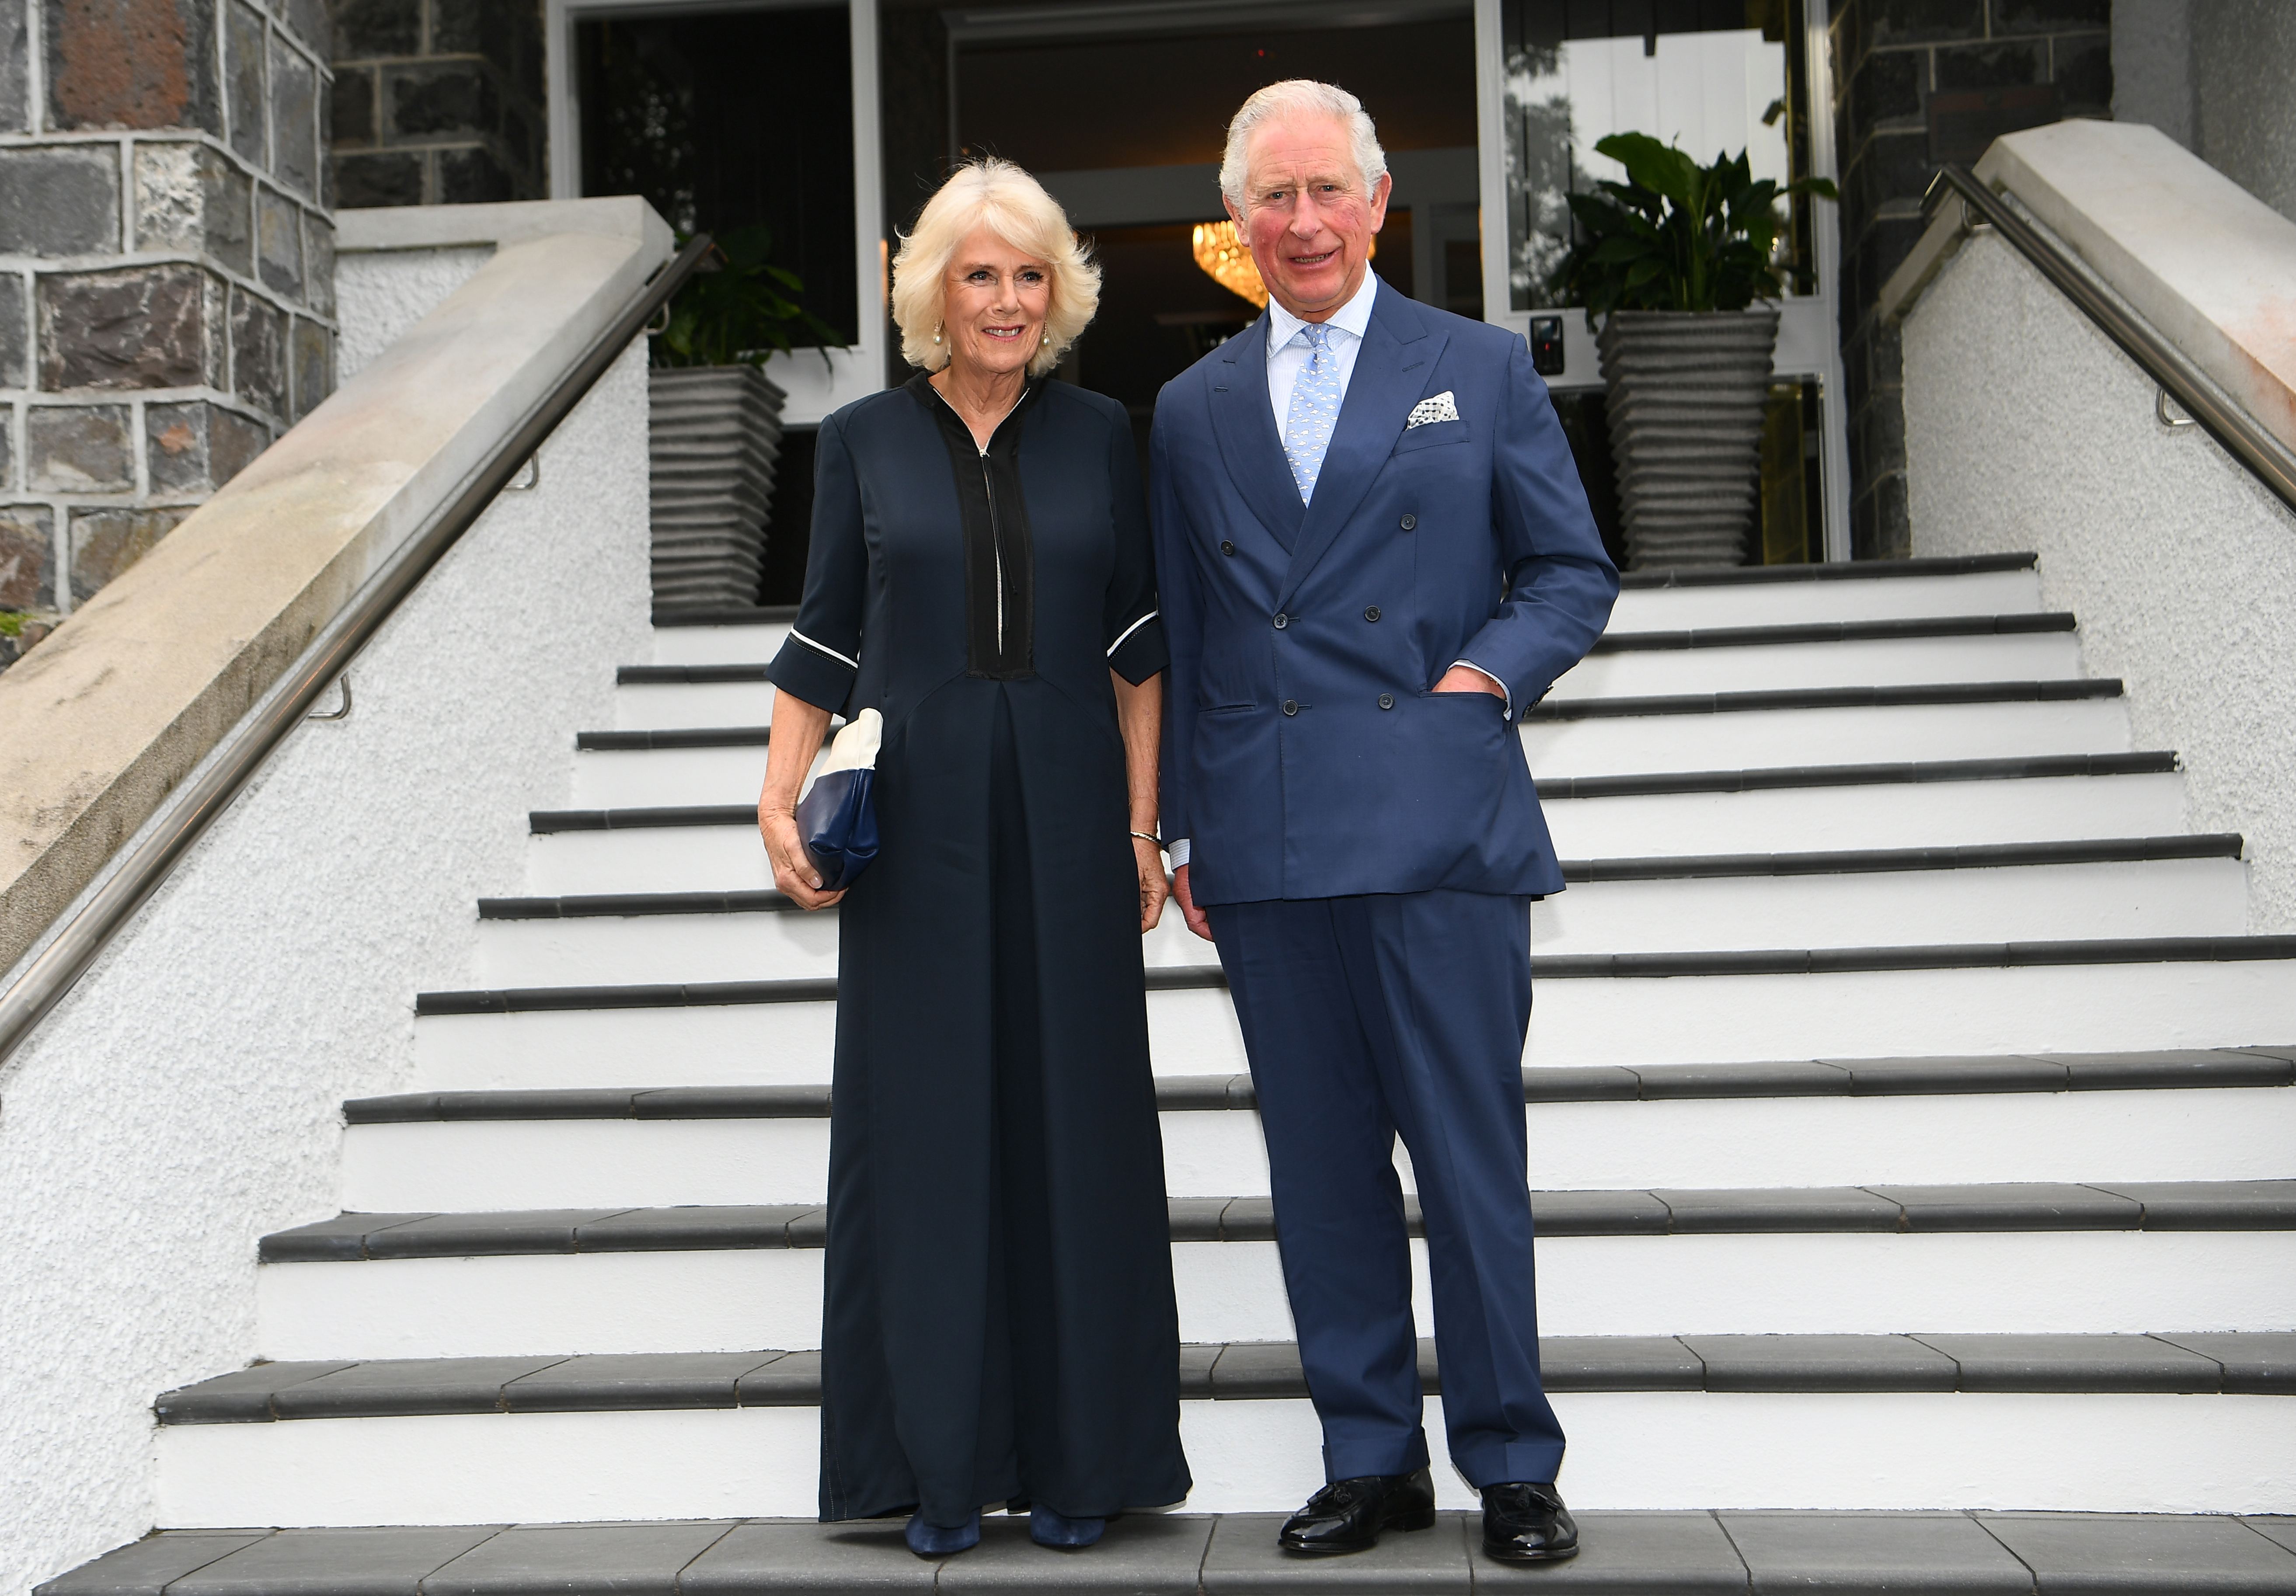 The Prince of Wales and The Duchess of Cornwall attend a reception in New Zealand